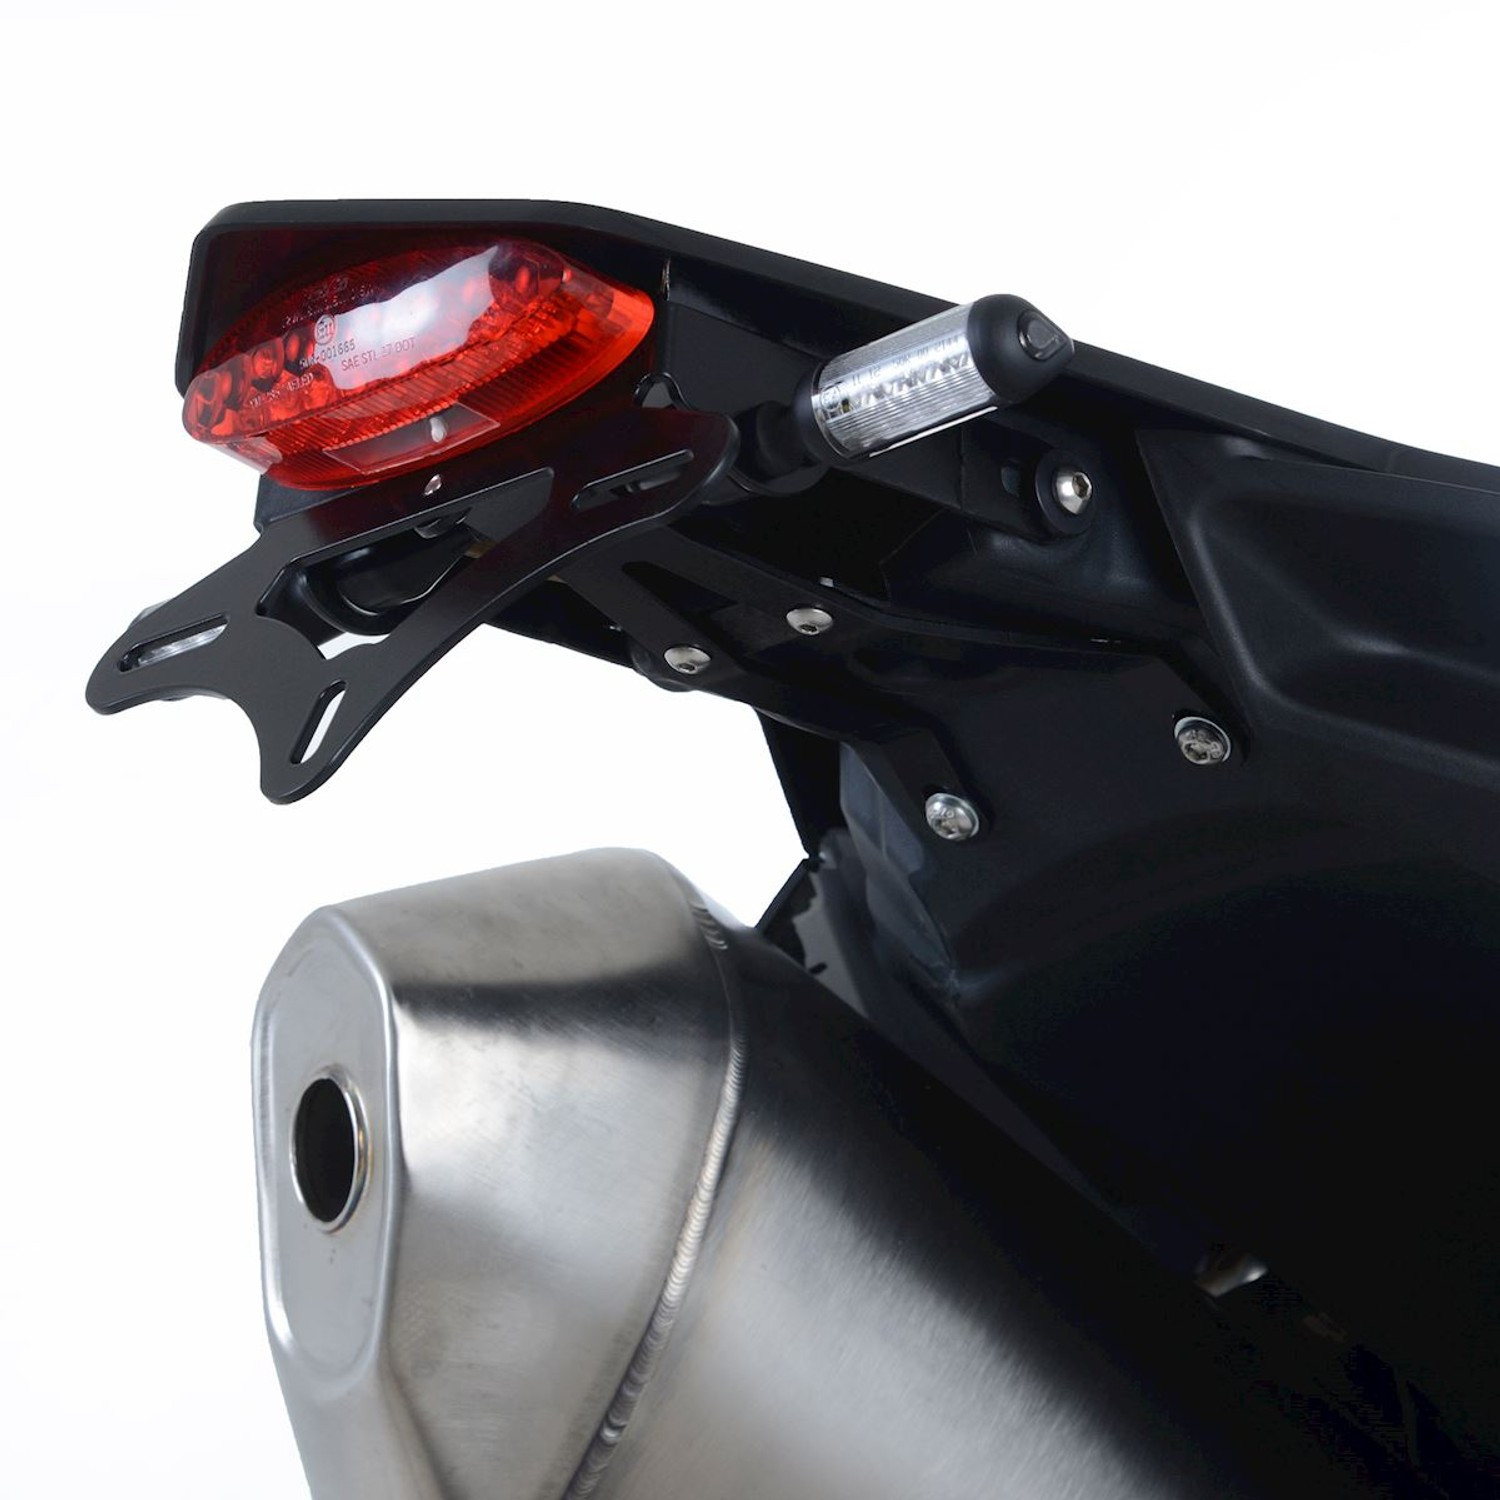 Nearest Honda Dealer >> Tail Tidy for KTM 690 SMC-R '19-